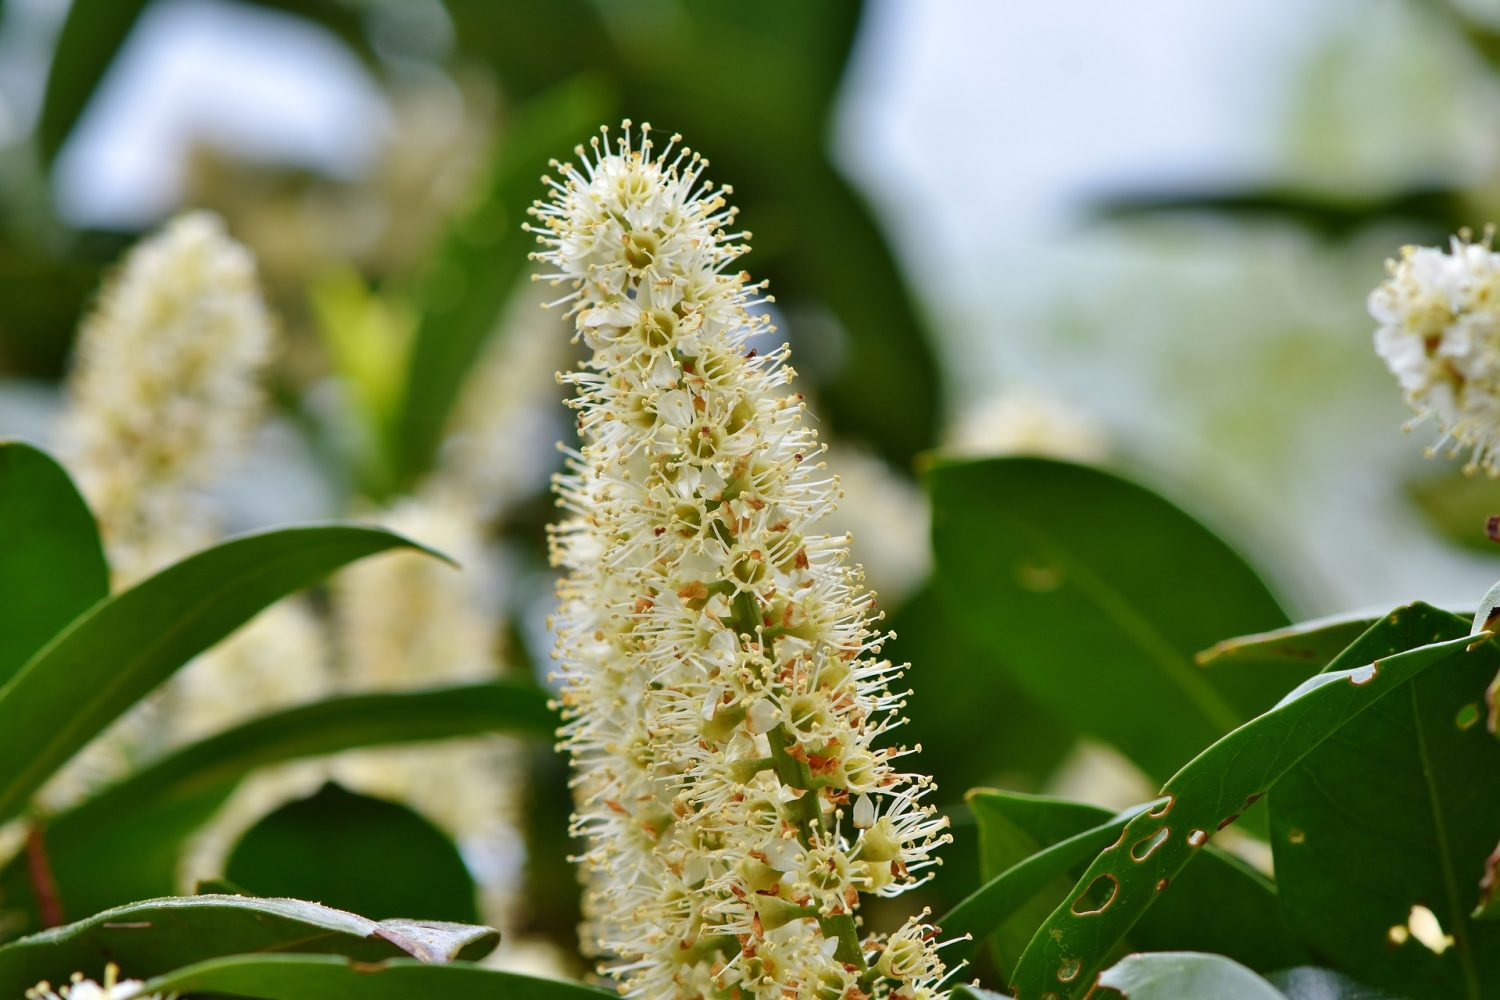 Cherry Laurel Flowers